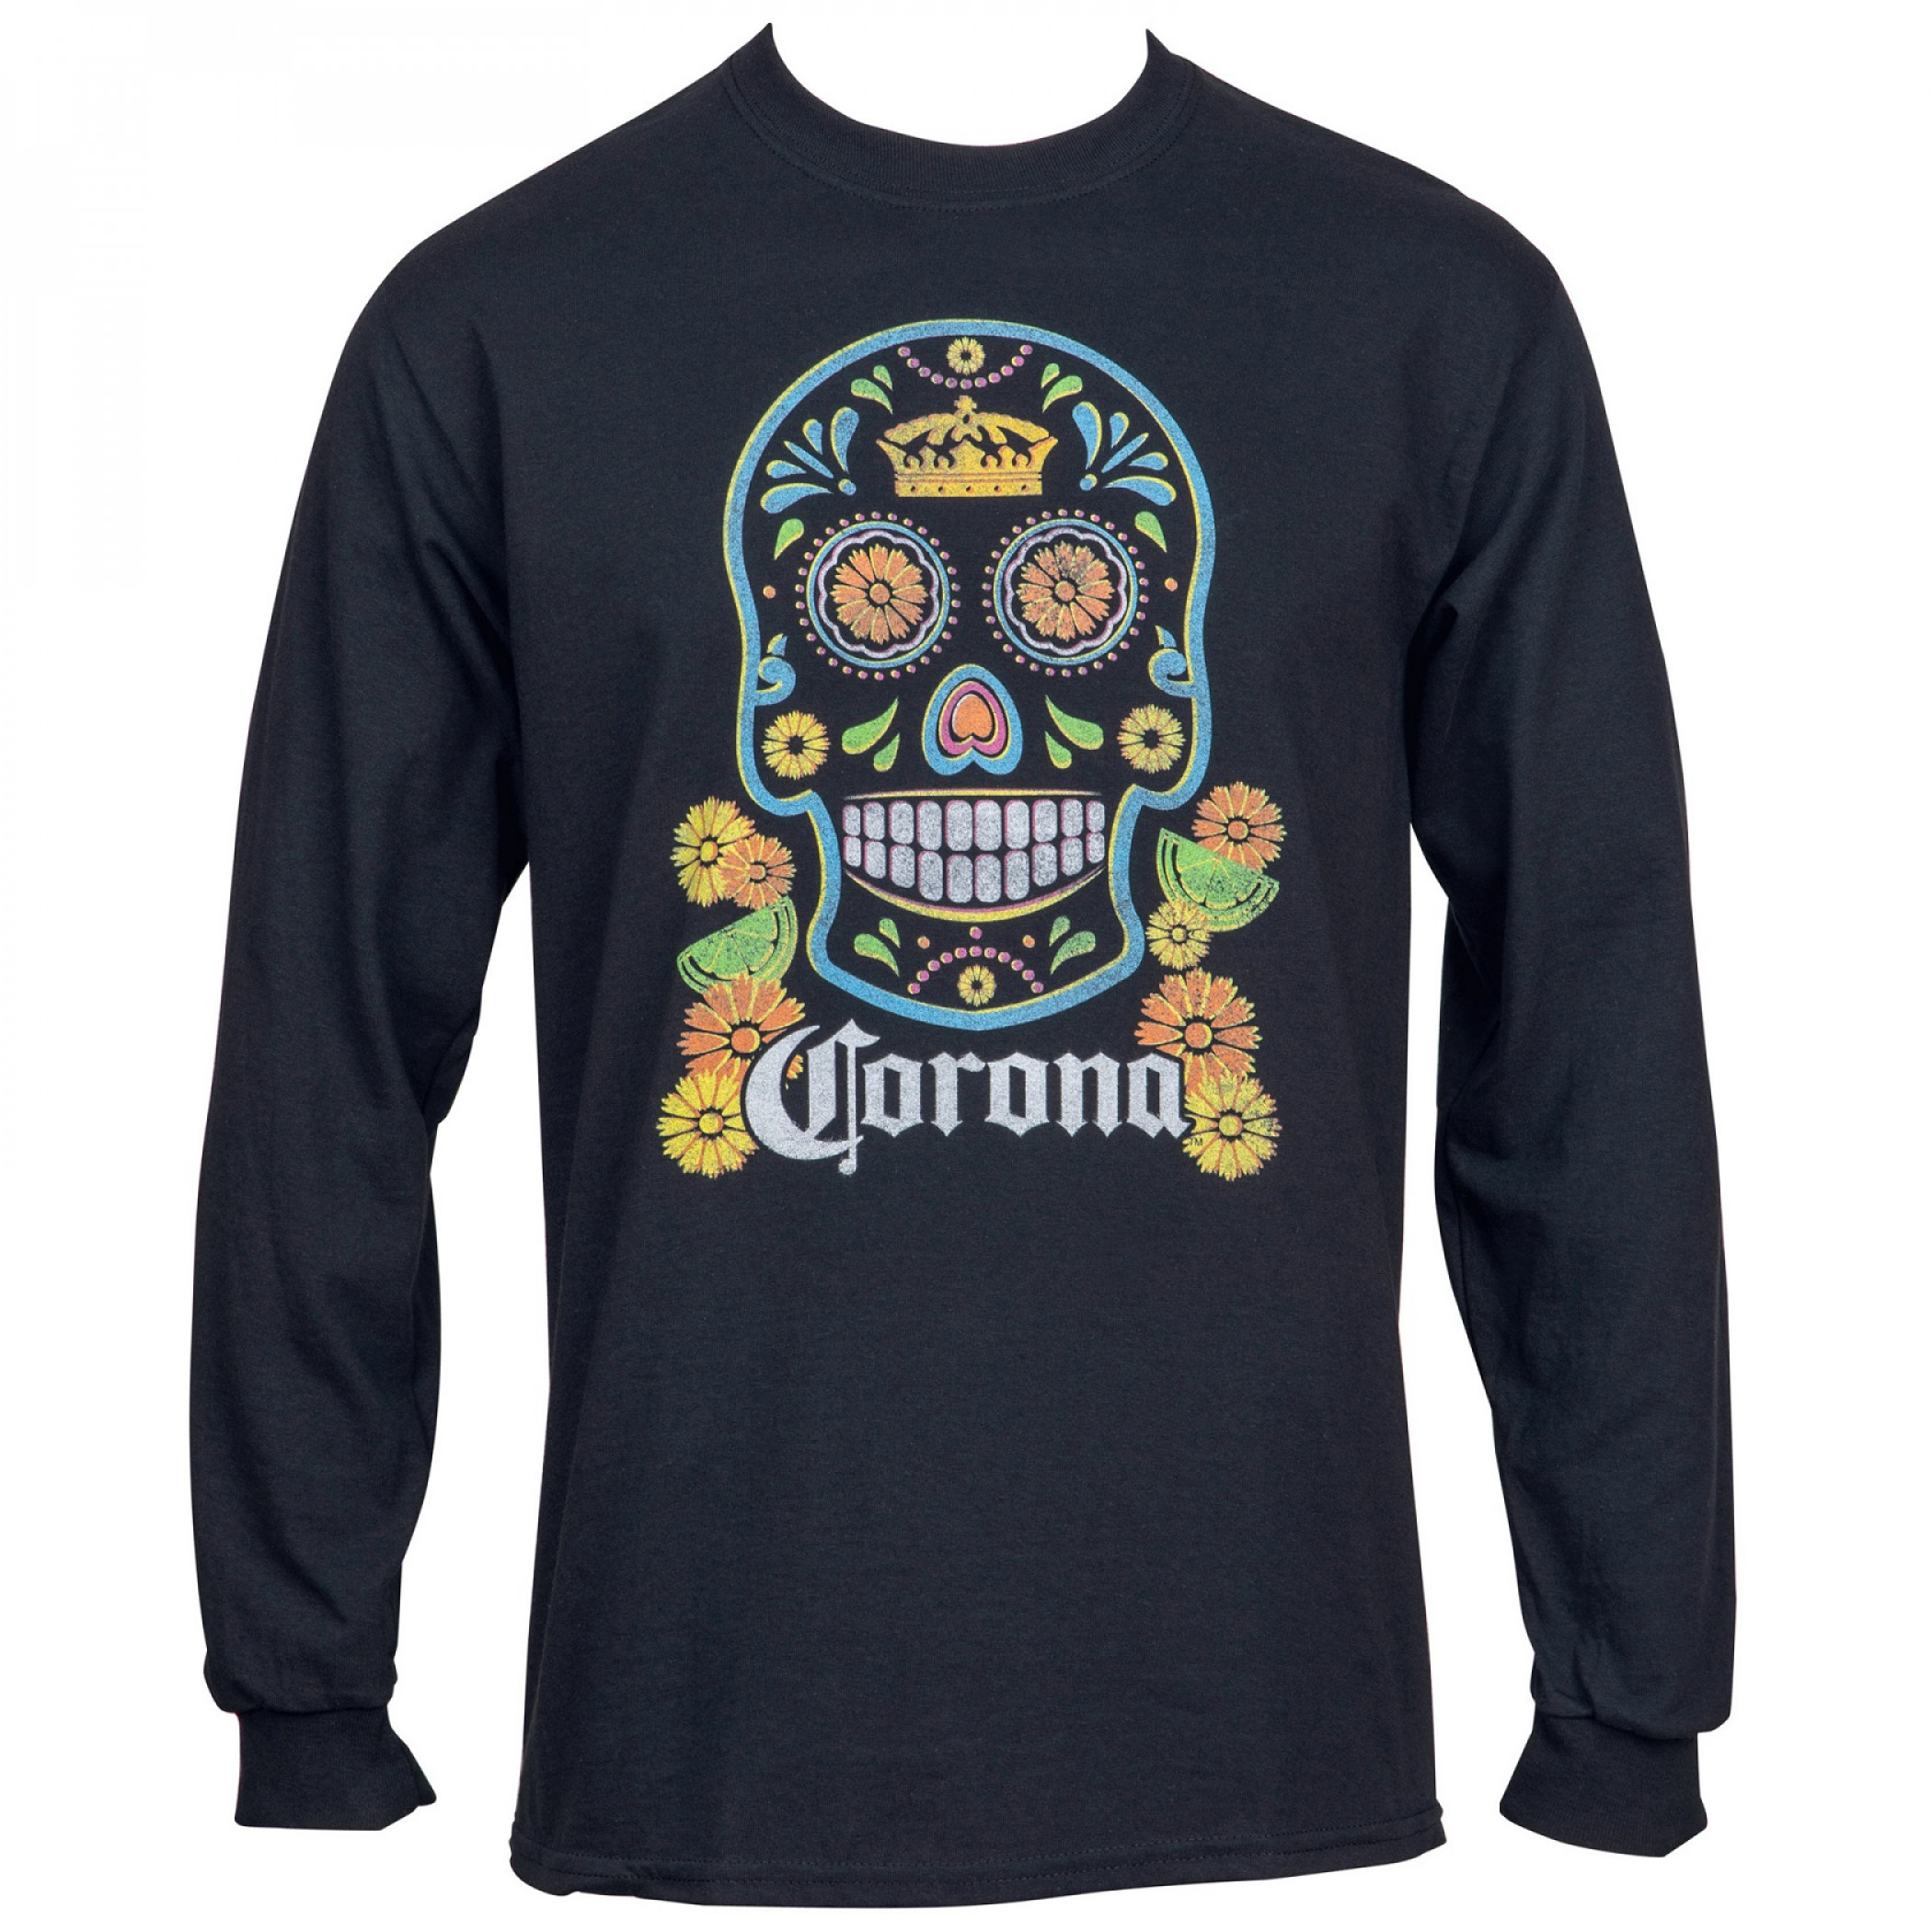 Corona Extra Sugar Skull Unisex Long Sleeve Shirt